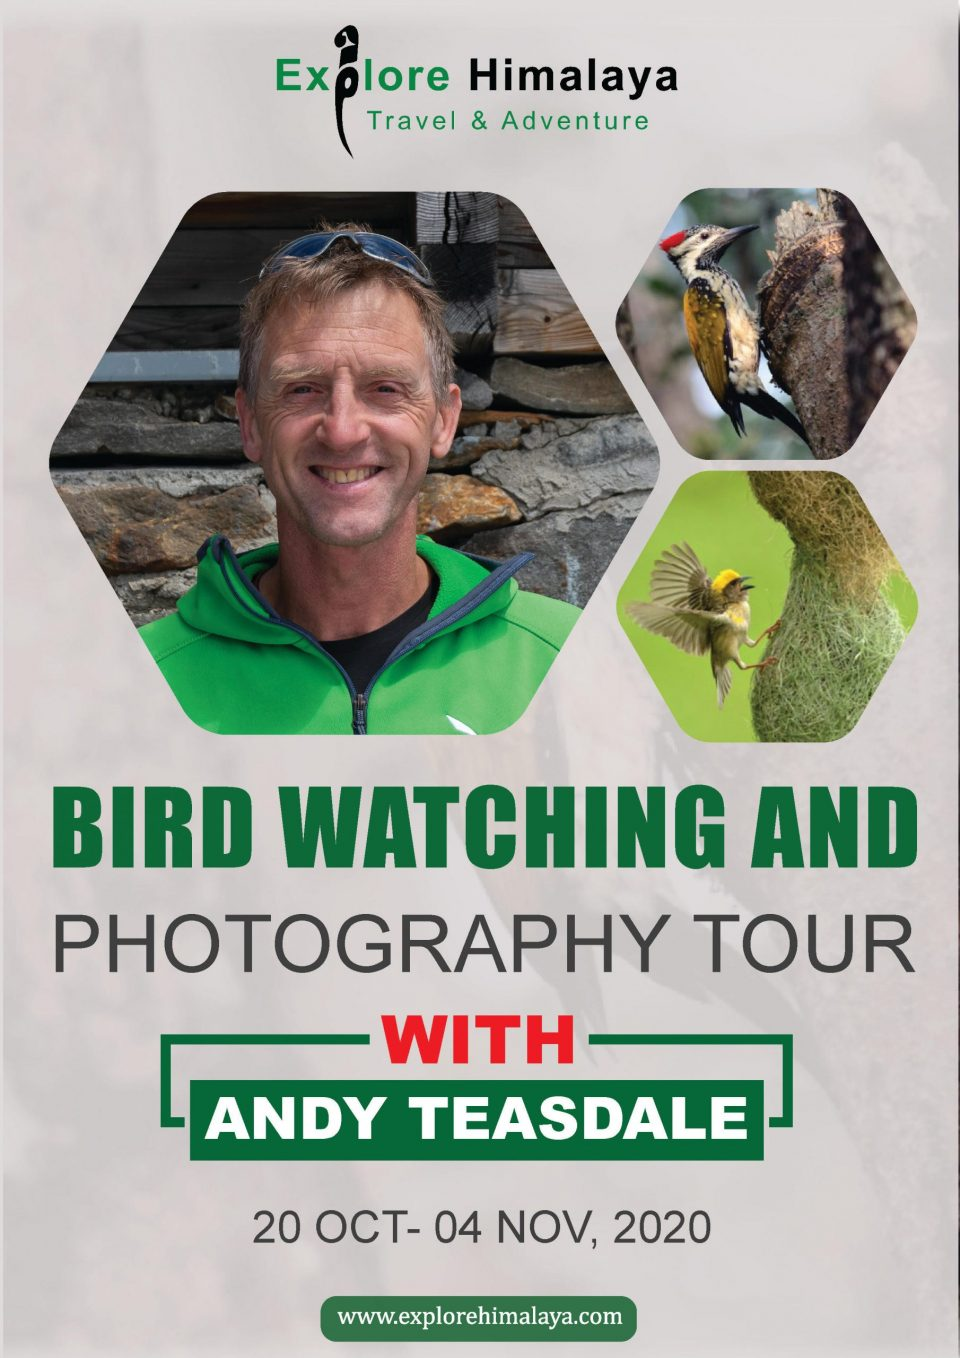 Bird Watching And Photography Tour with Andy Teasdale